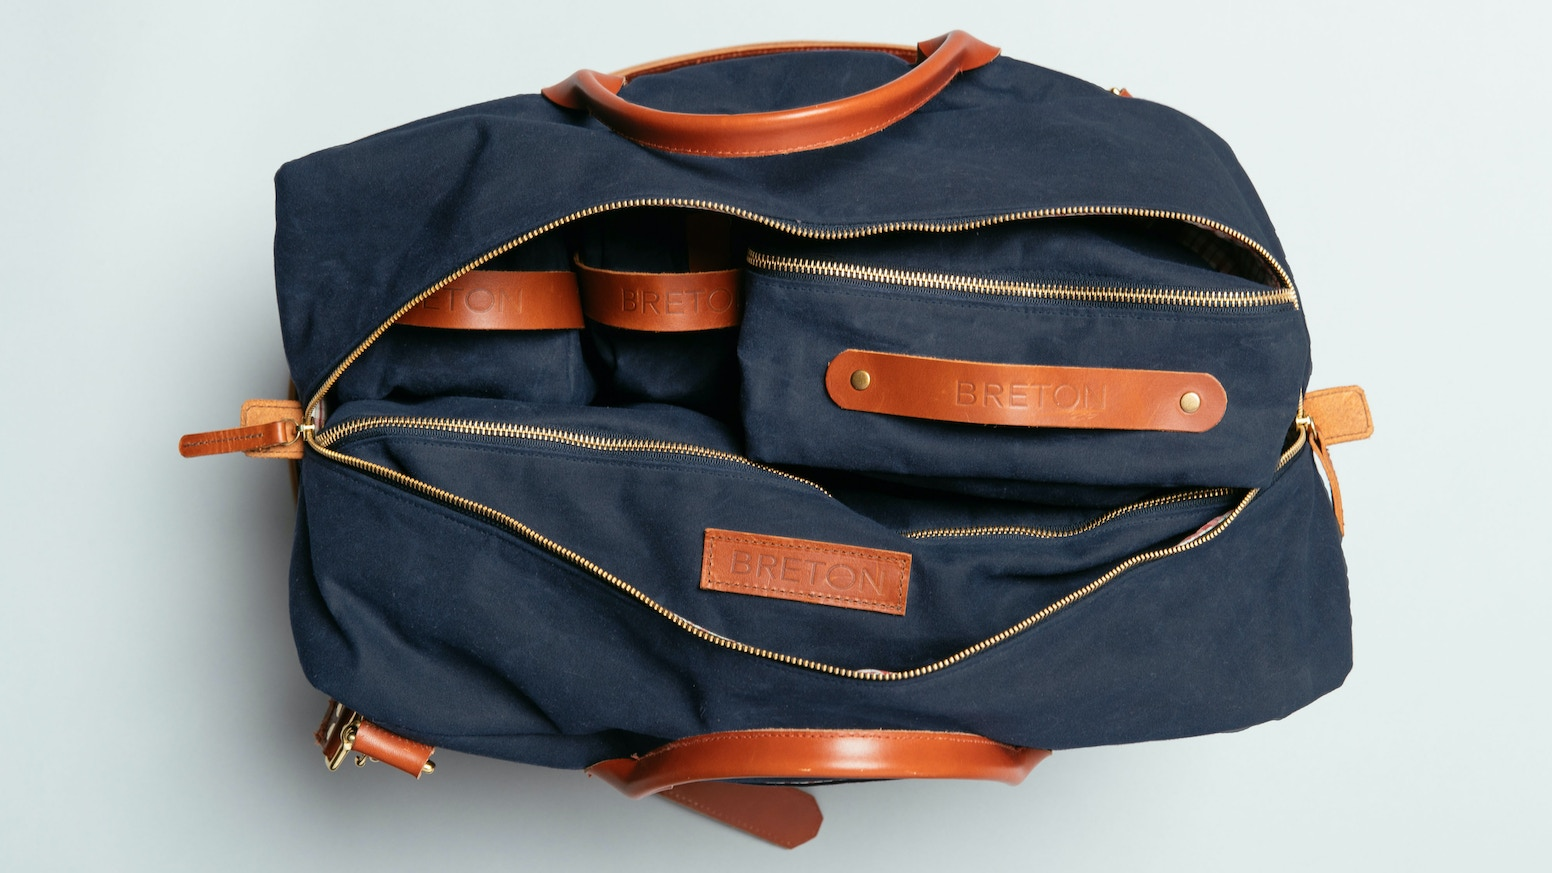 The most organized duffle you will ever own. A high-quality, modern travel bag, designed with vintage waxed cotton & premium leather.